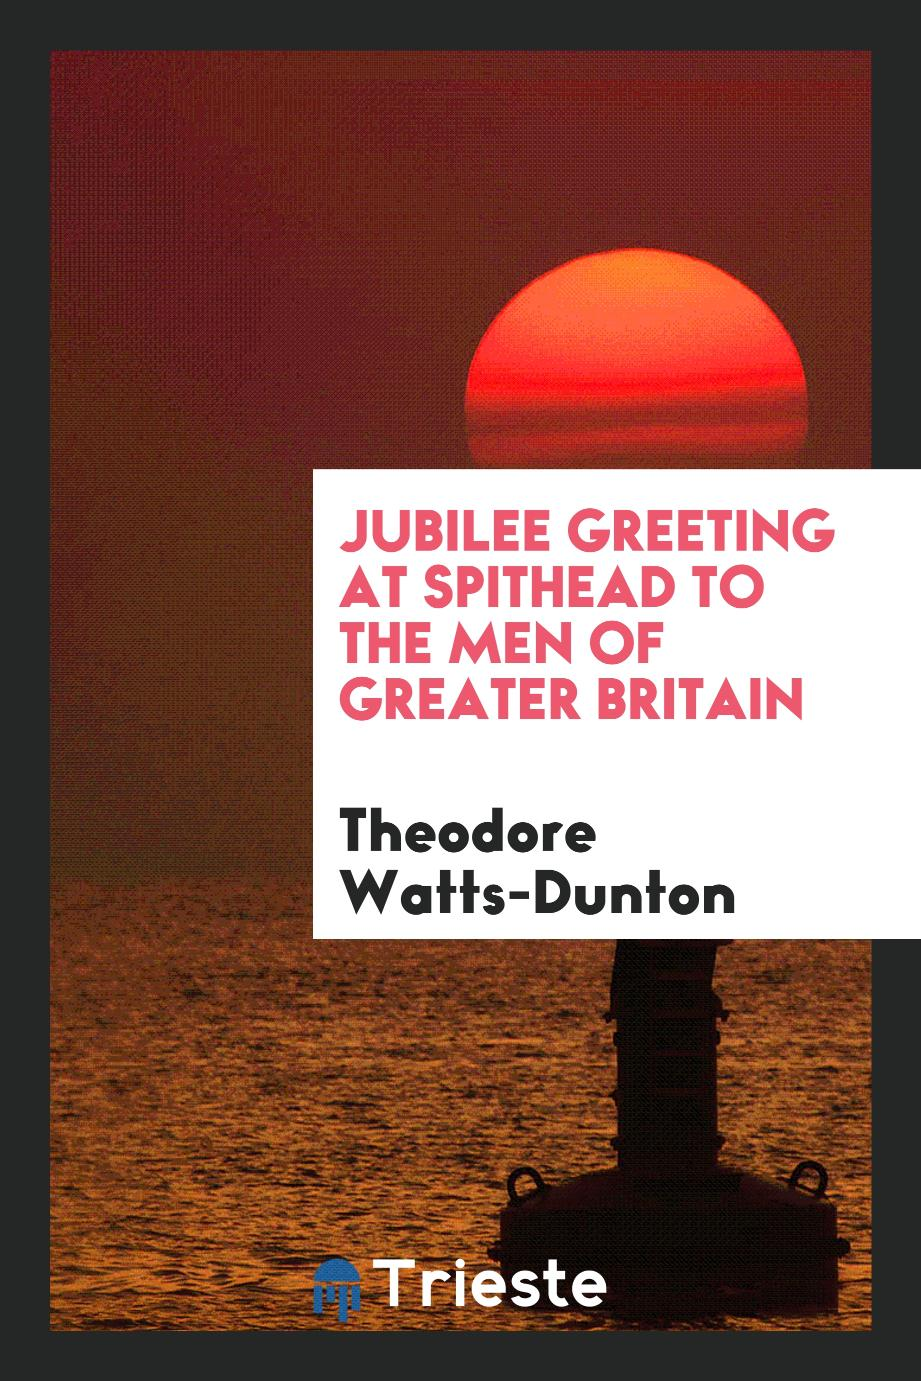 Jubilee Greeting at Spithead to the Men of Greater Britain